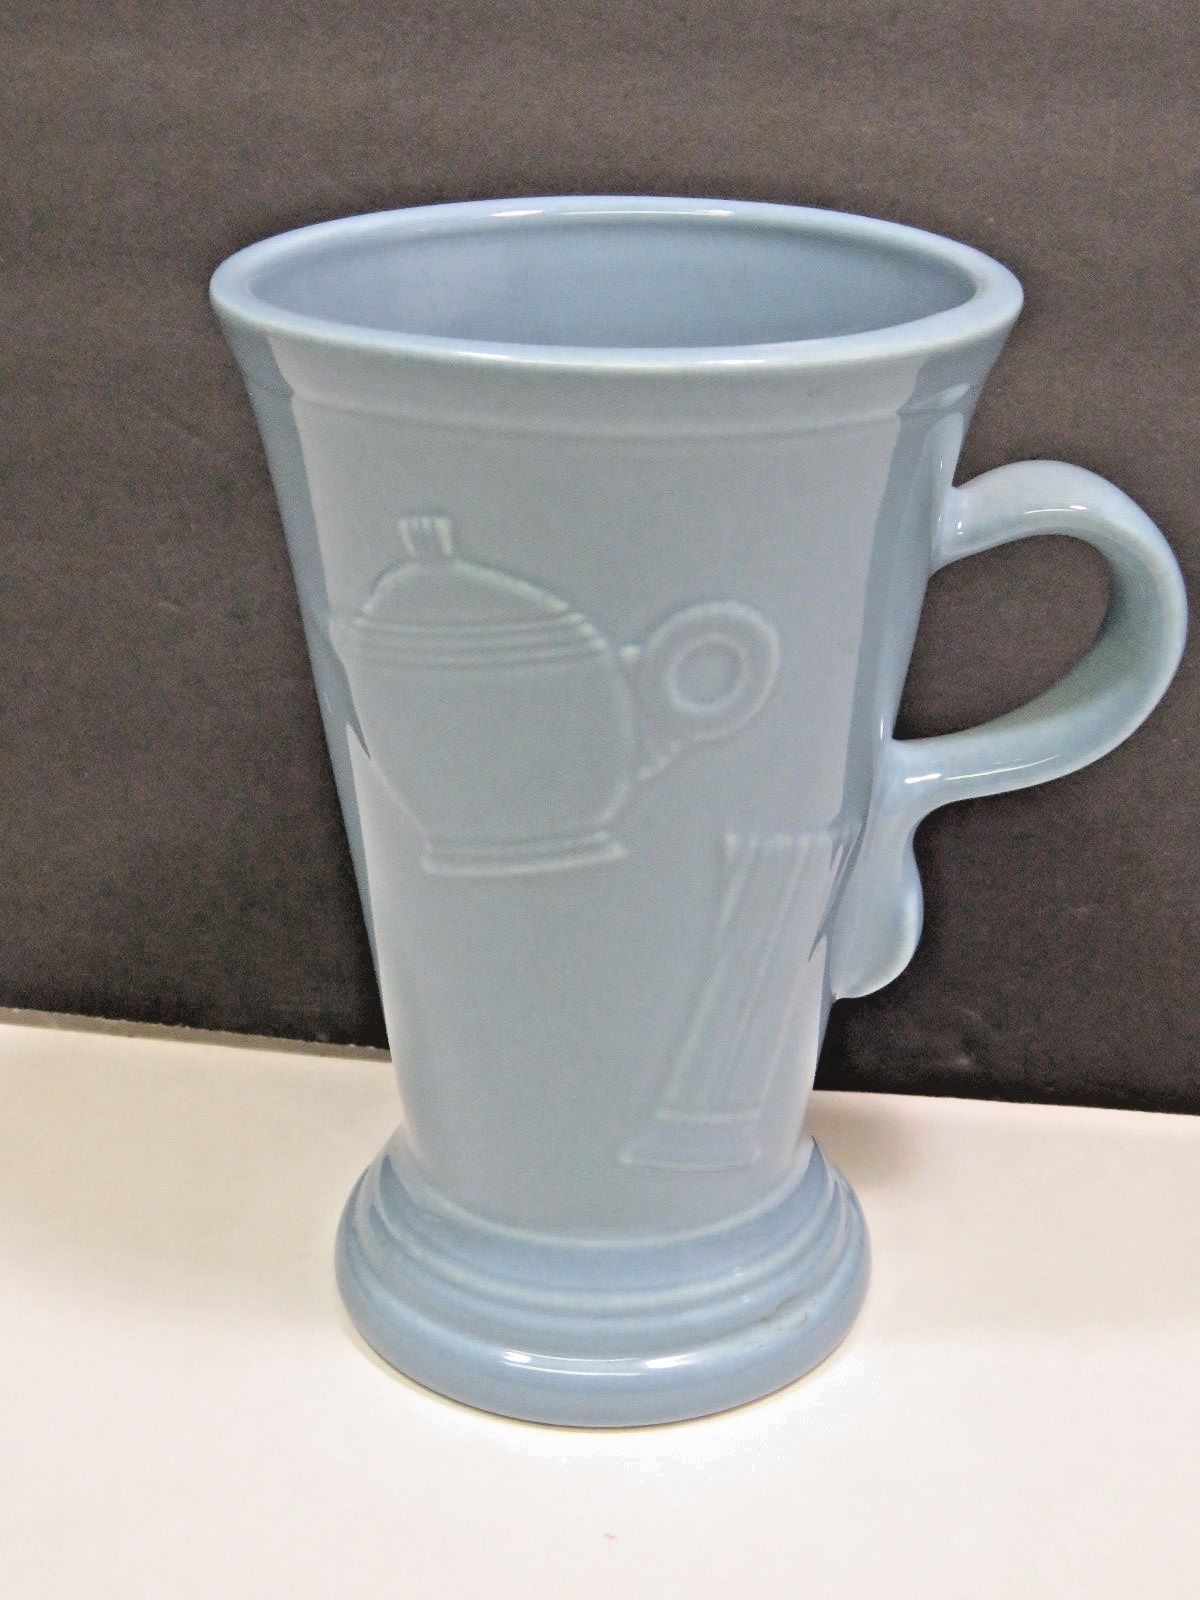 Primary image for Fiesta Retired Periwinkle Blue Cappuccino Latte Tall Mug Embossed Icon